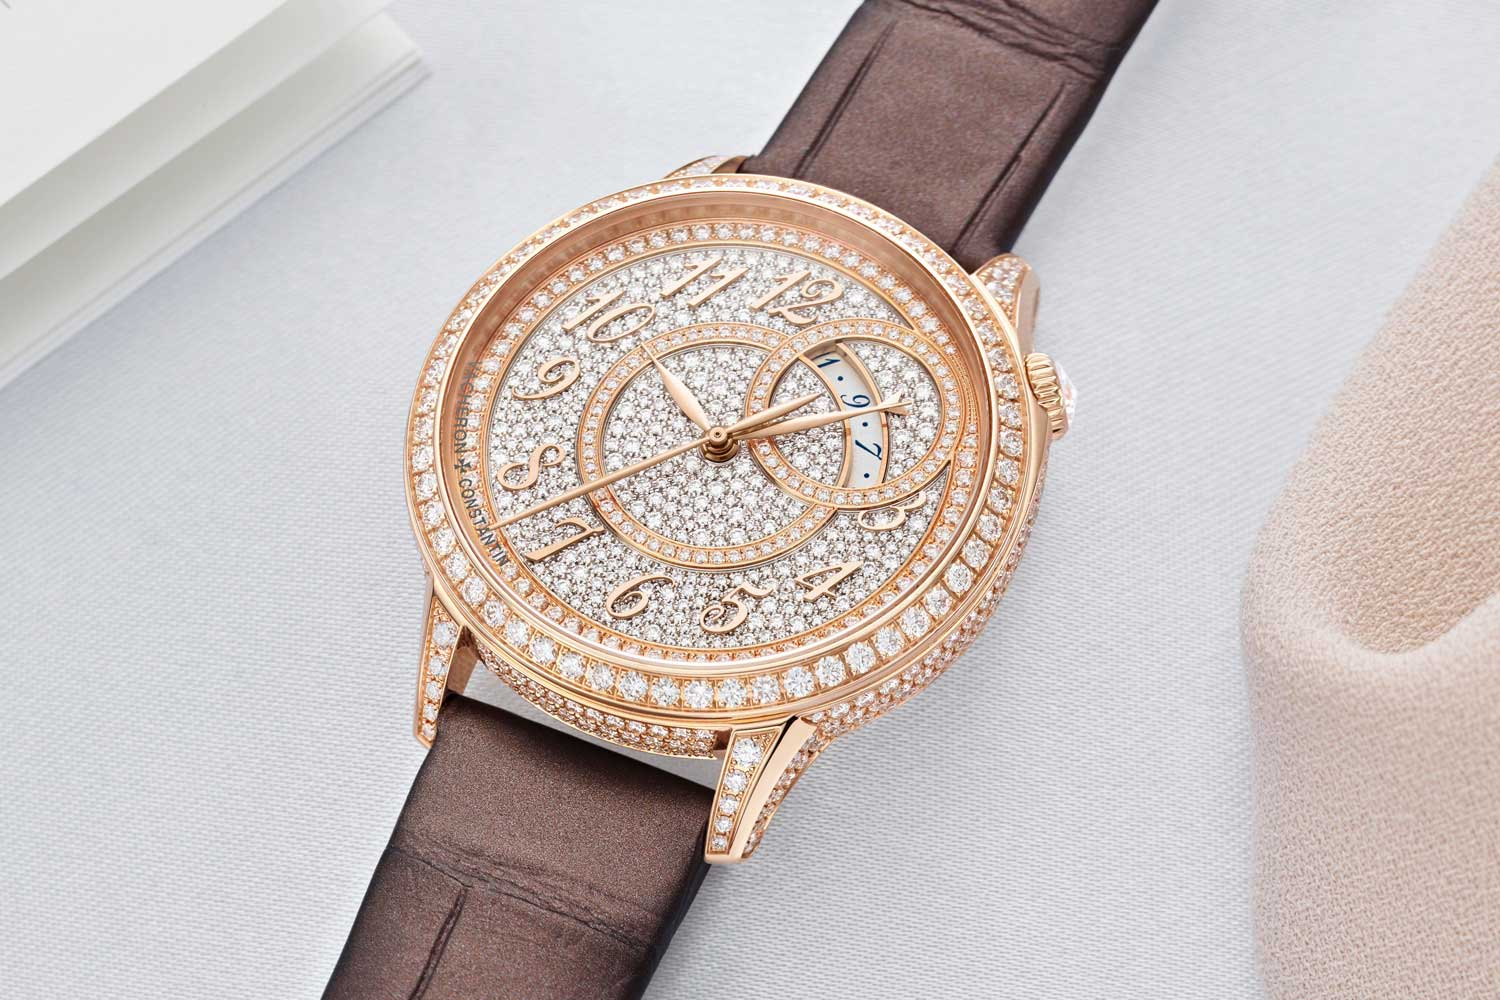 The self-winding Égérie watches are adorned with 574 round-cut diamonds